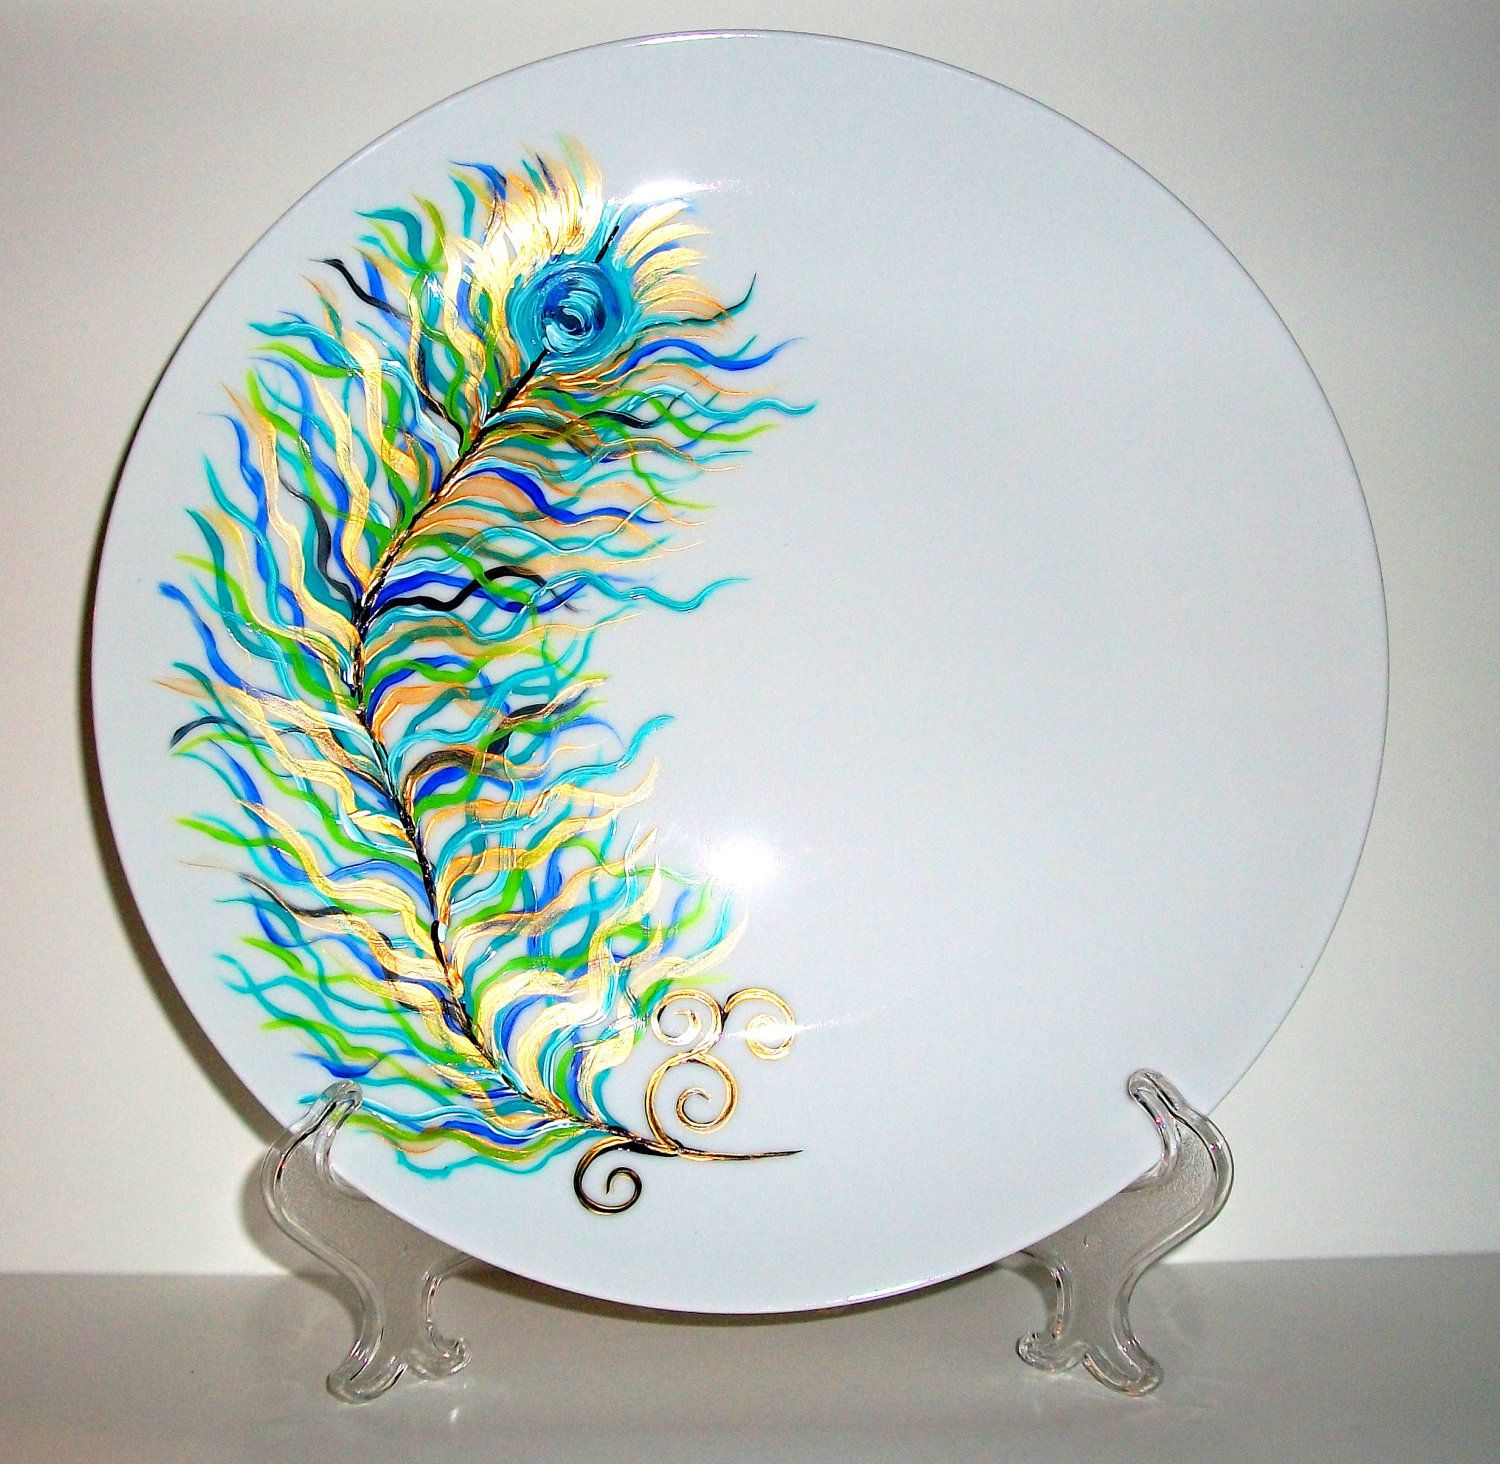 Painted Couple Peacock Wedding Gifts Unique Delicate Home: Handpainted Wedding Plate Hand Painted Peacock Feathers